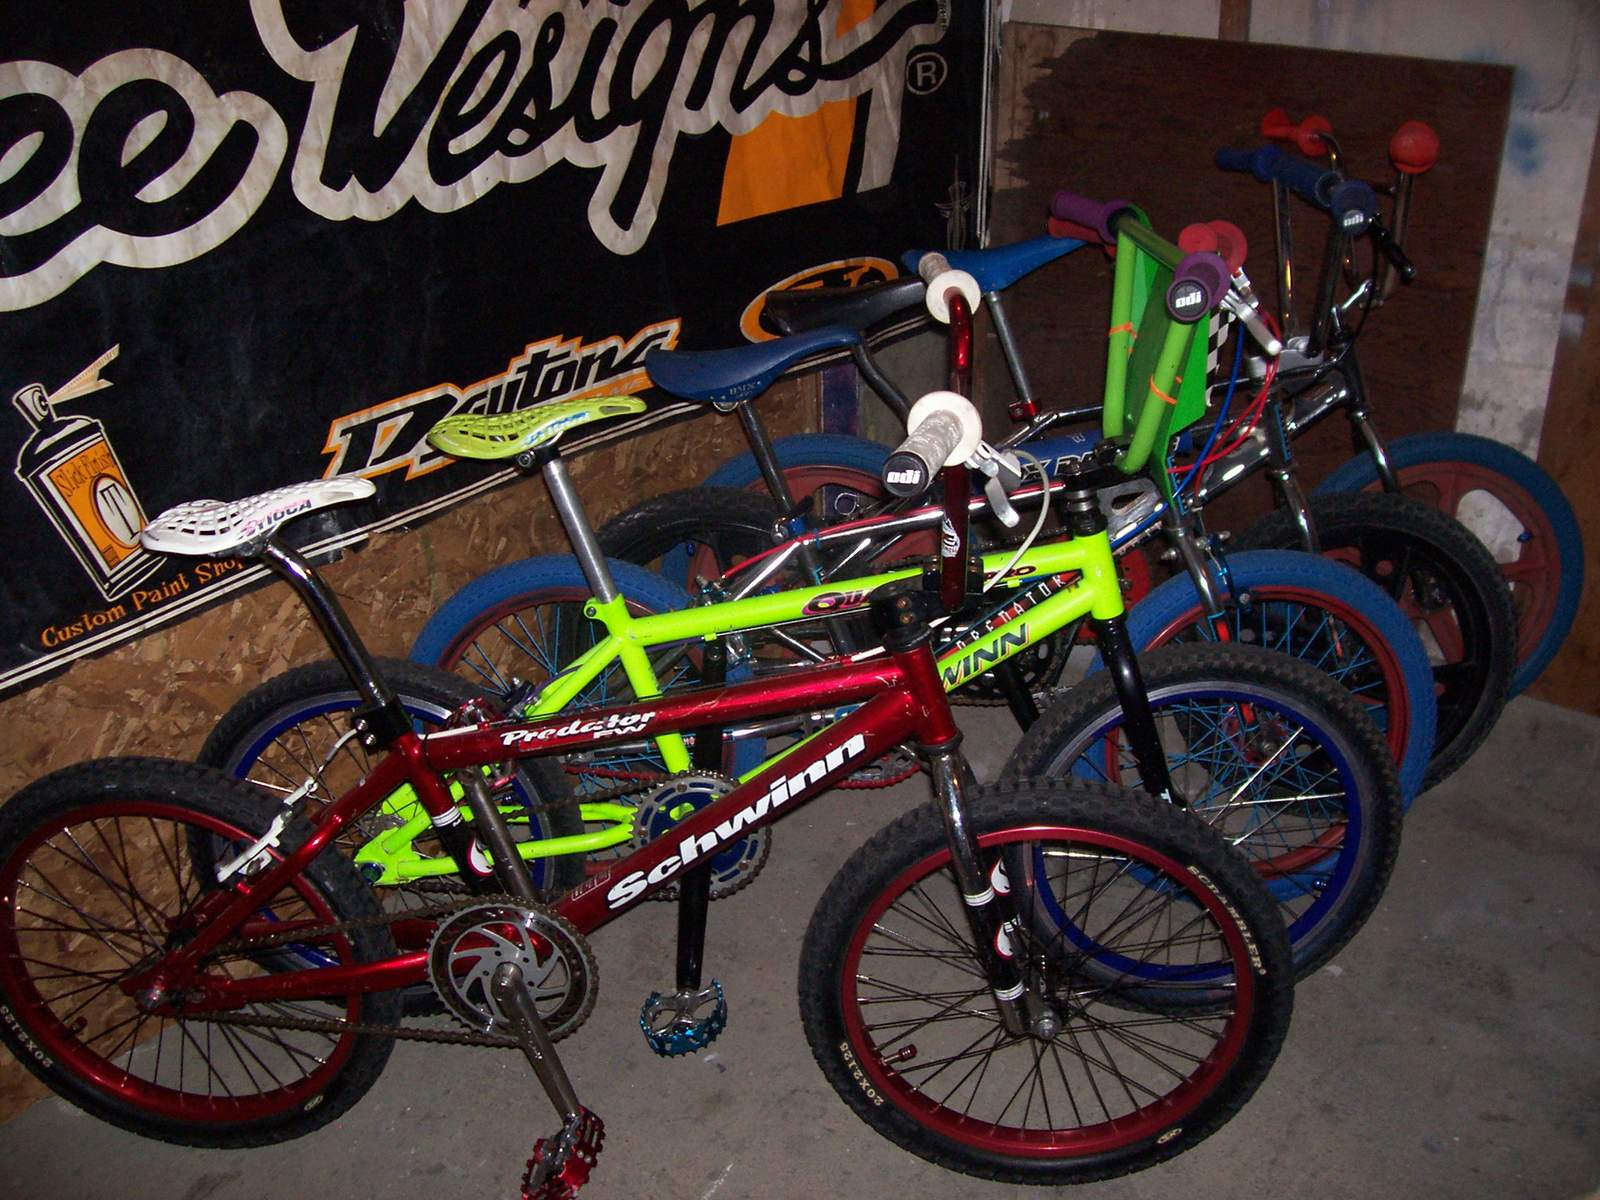 http://uploads.bmxmuseum.com/user-images/61851/100_978959a901e01f.jpg